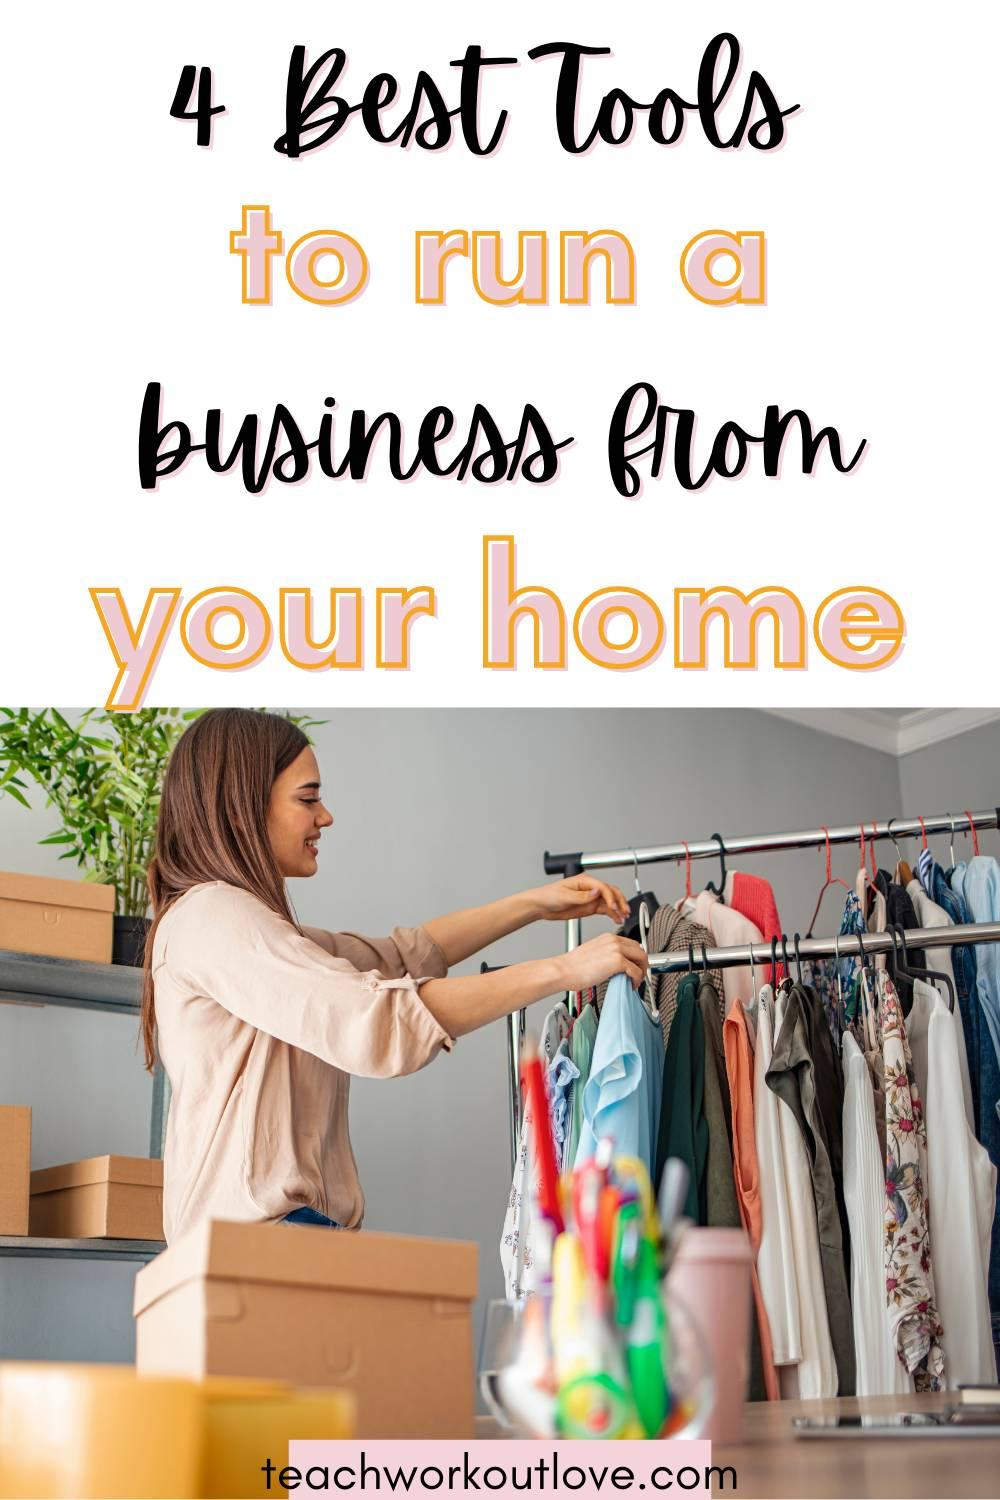 There's many perks to working from home. The good news for those worried about running a home business is that various tools can help you.